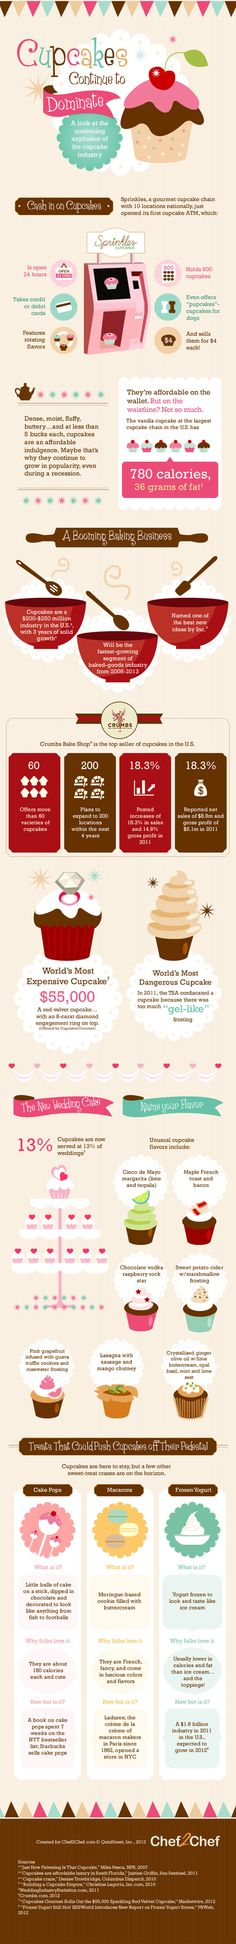 Cupcakes dominate the world!